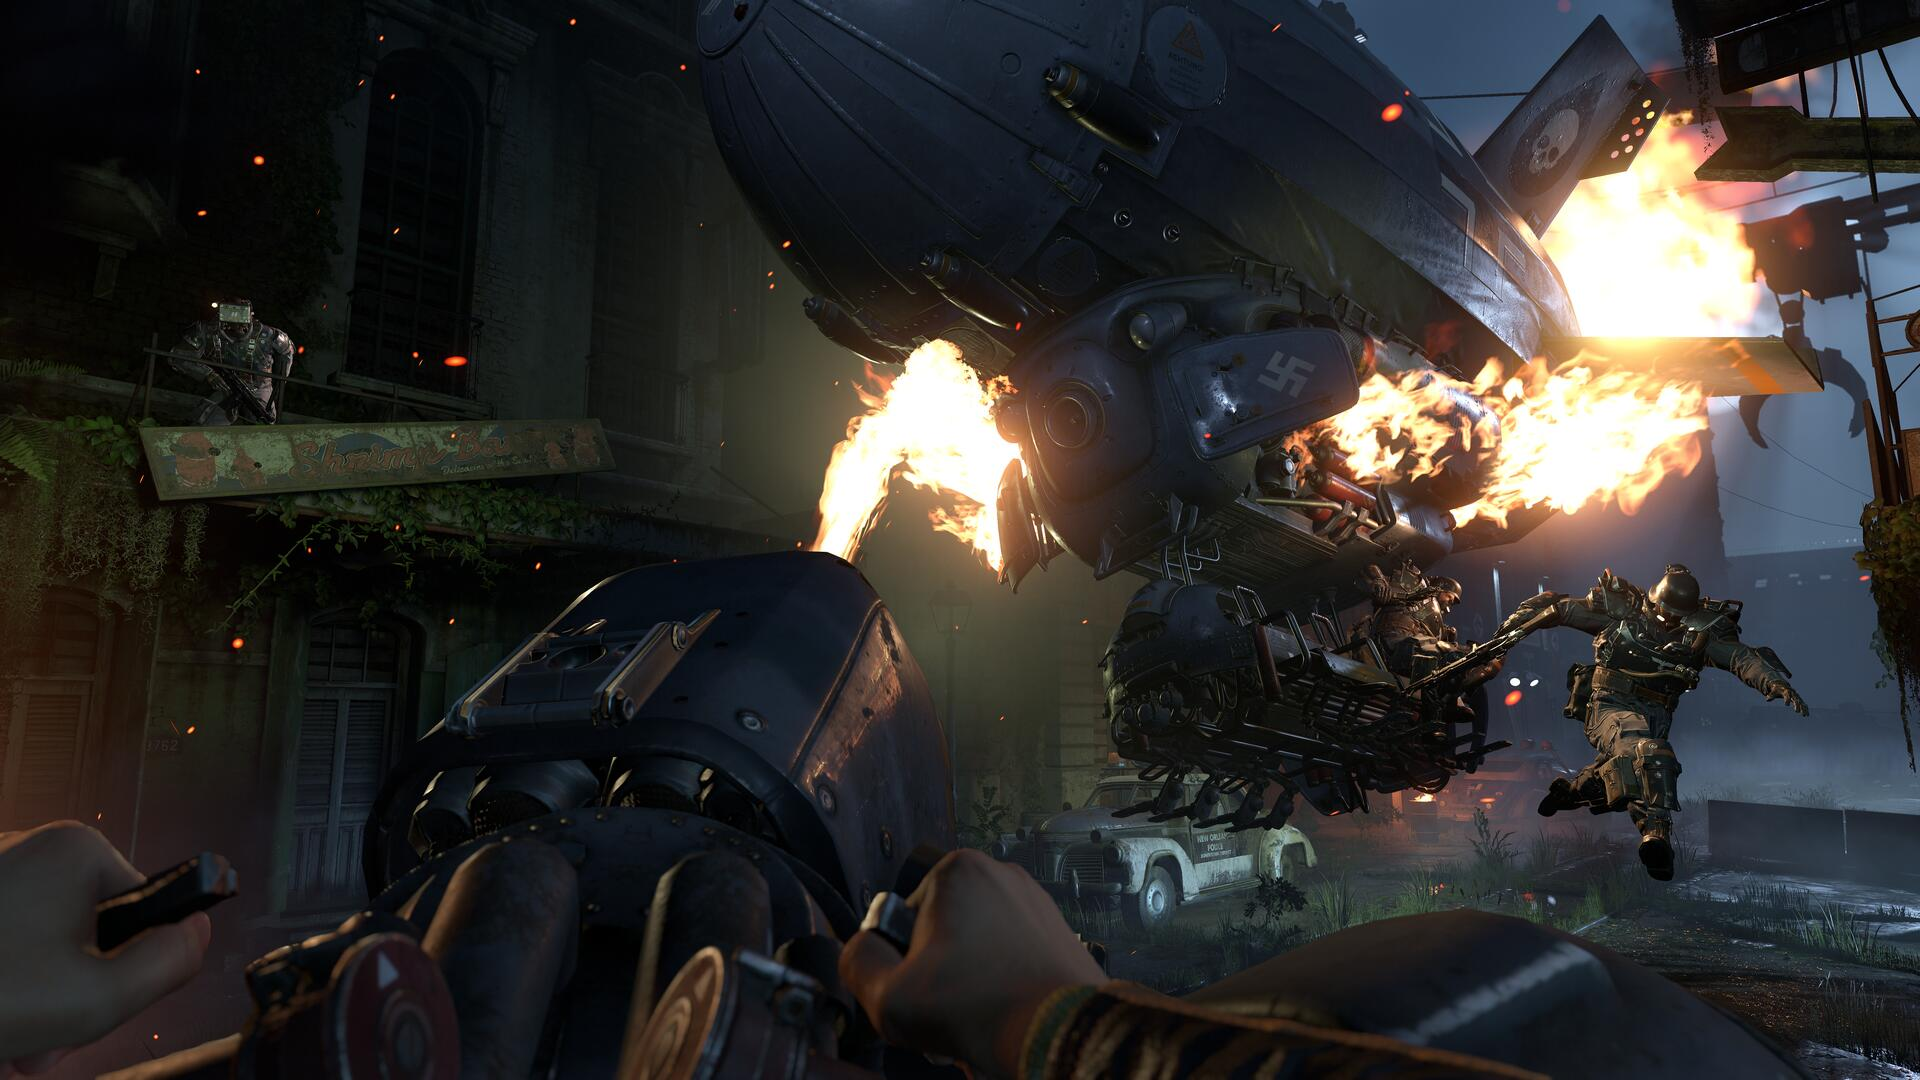 Wolfenstein 2: The New Colossus May Not Be Political, but It's Revolutionary as Hell